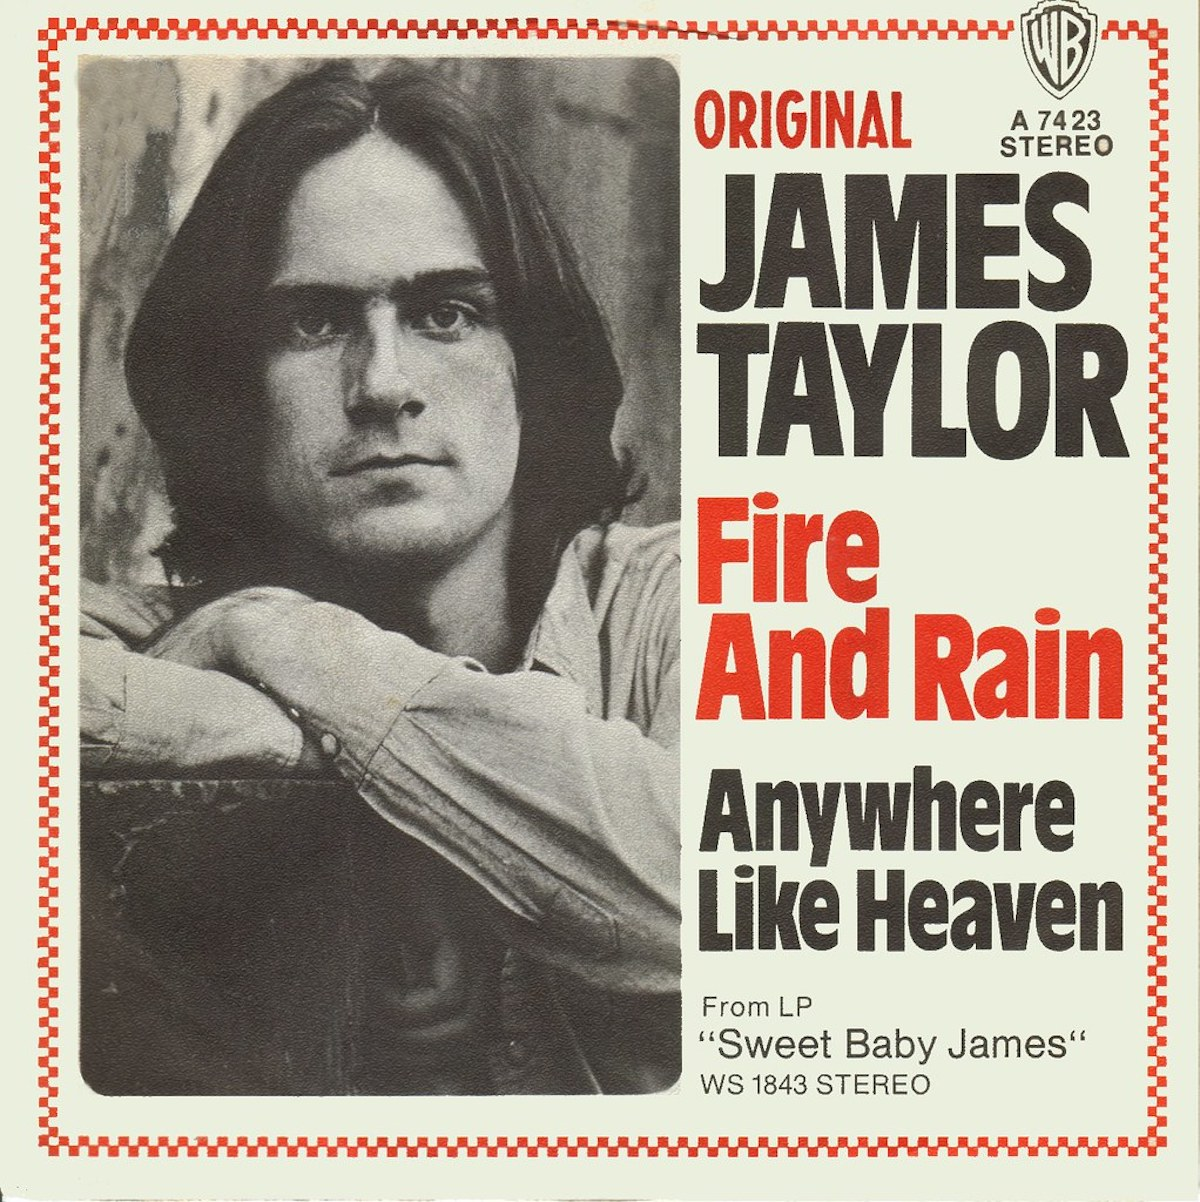 """album cover for james taylor's """"fire and rain"""""""